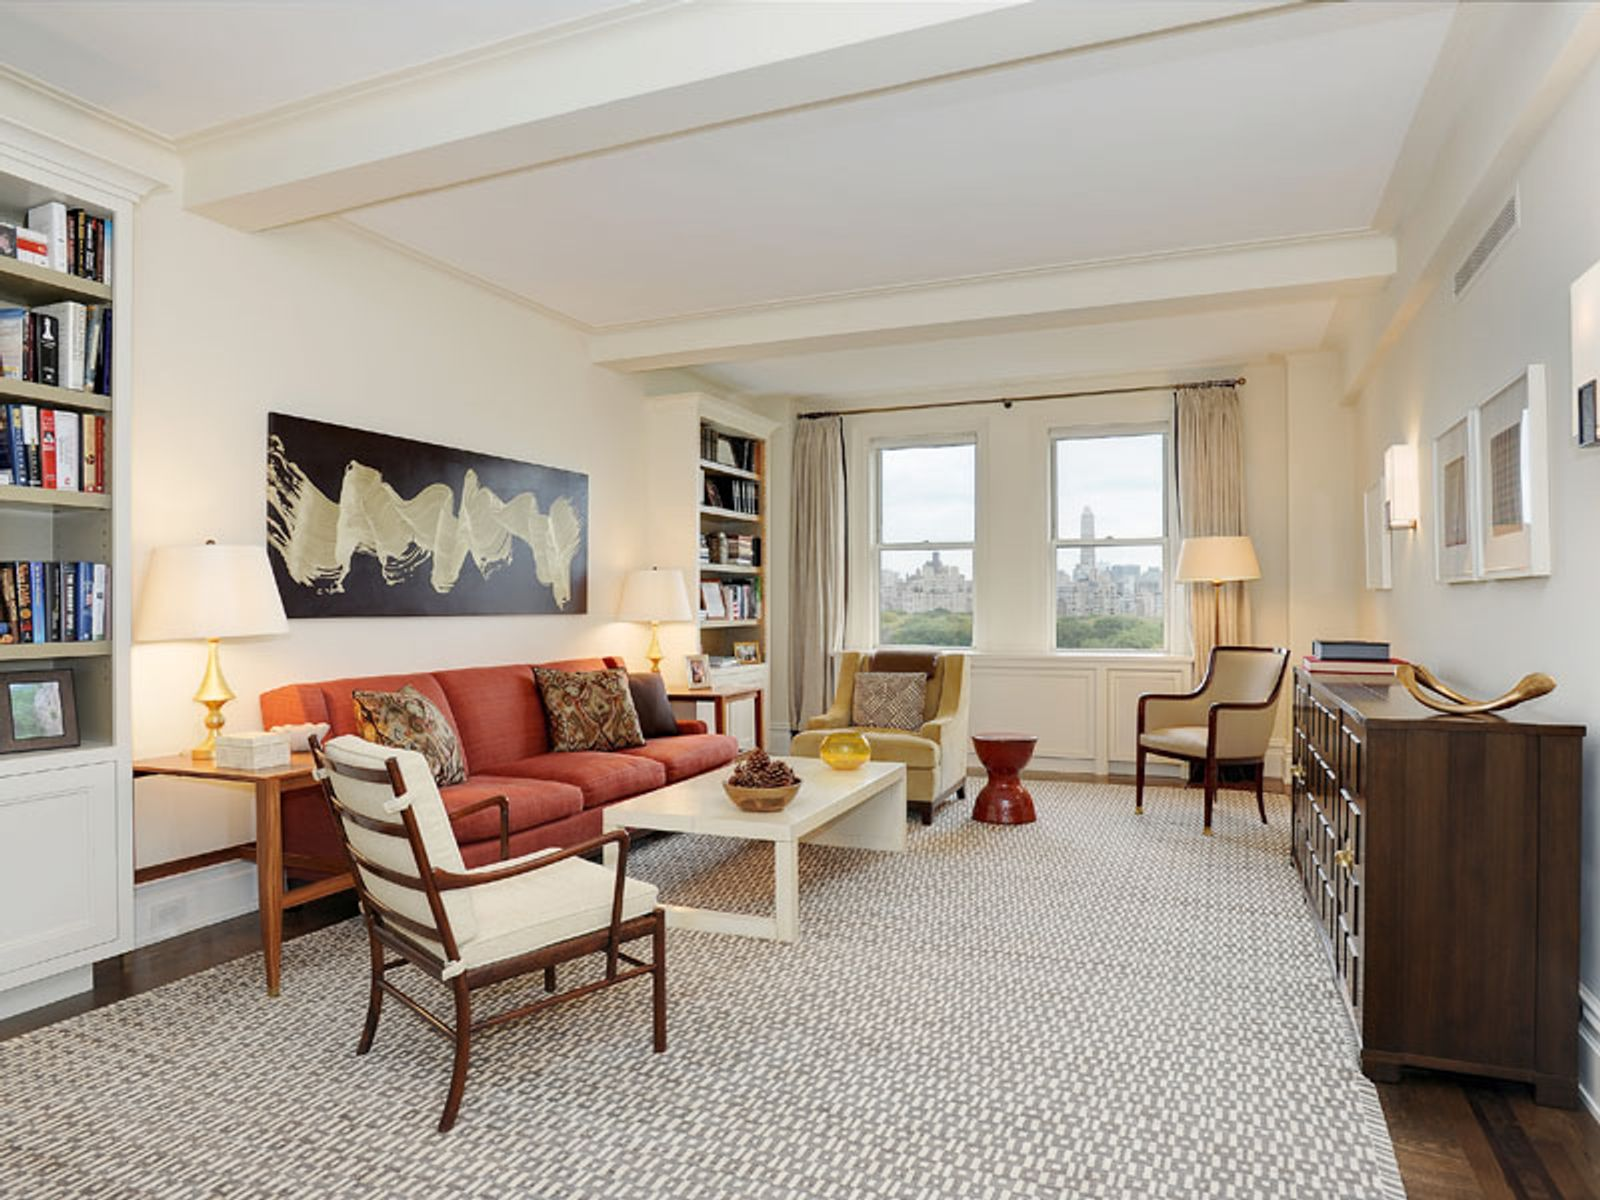 65 Central Park West, 12B, New York NY Cooperative - New York City Real Estate